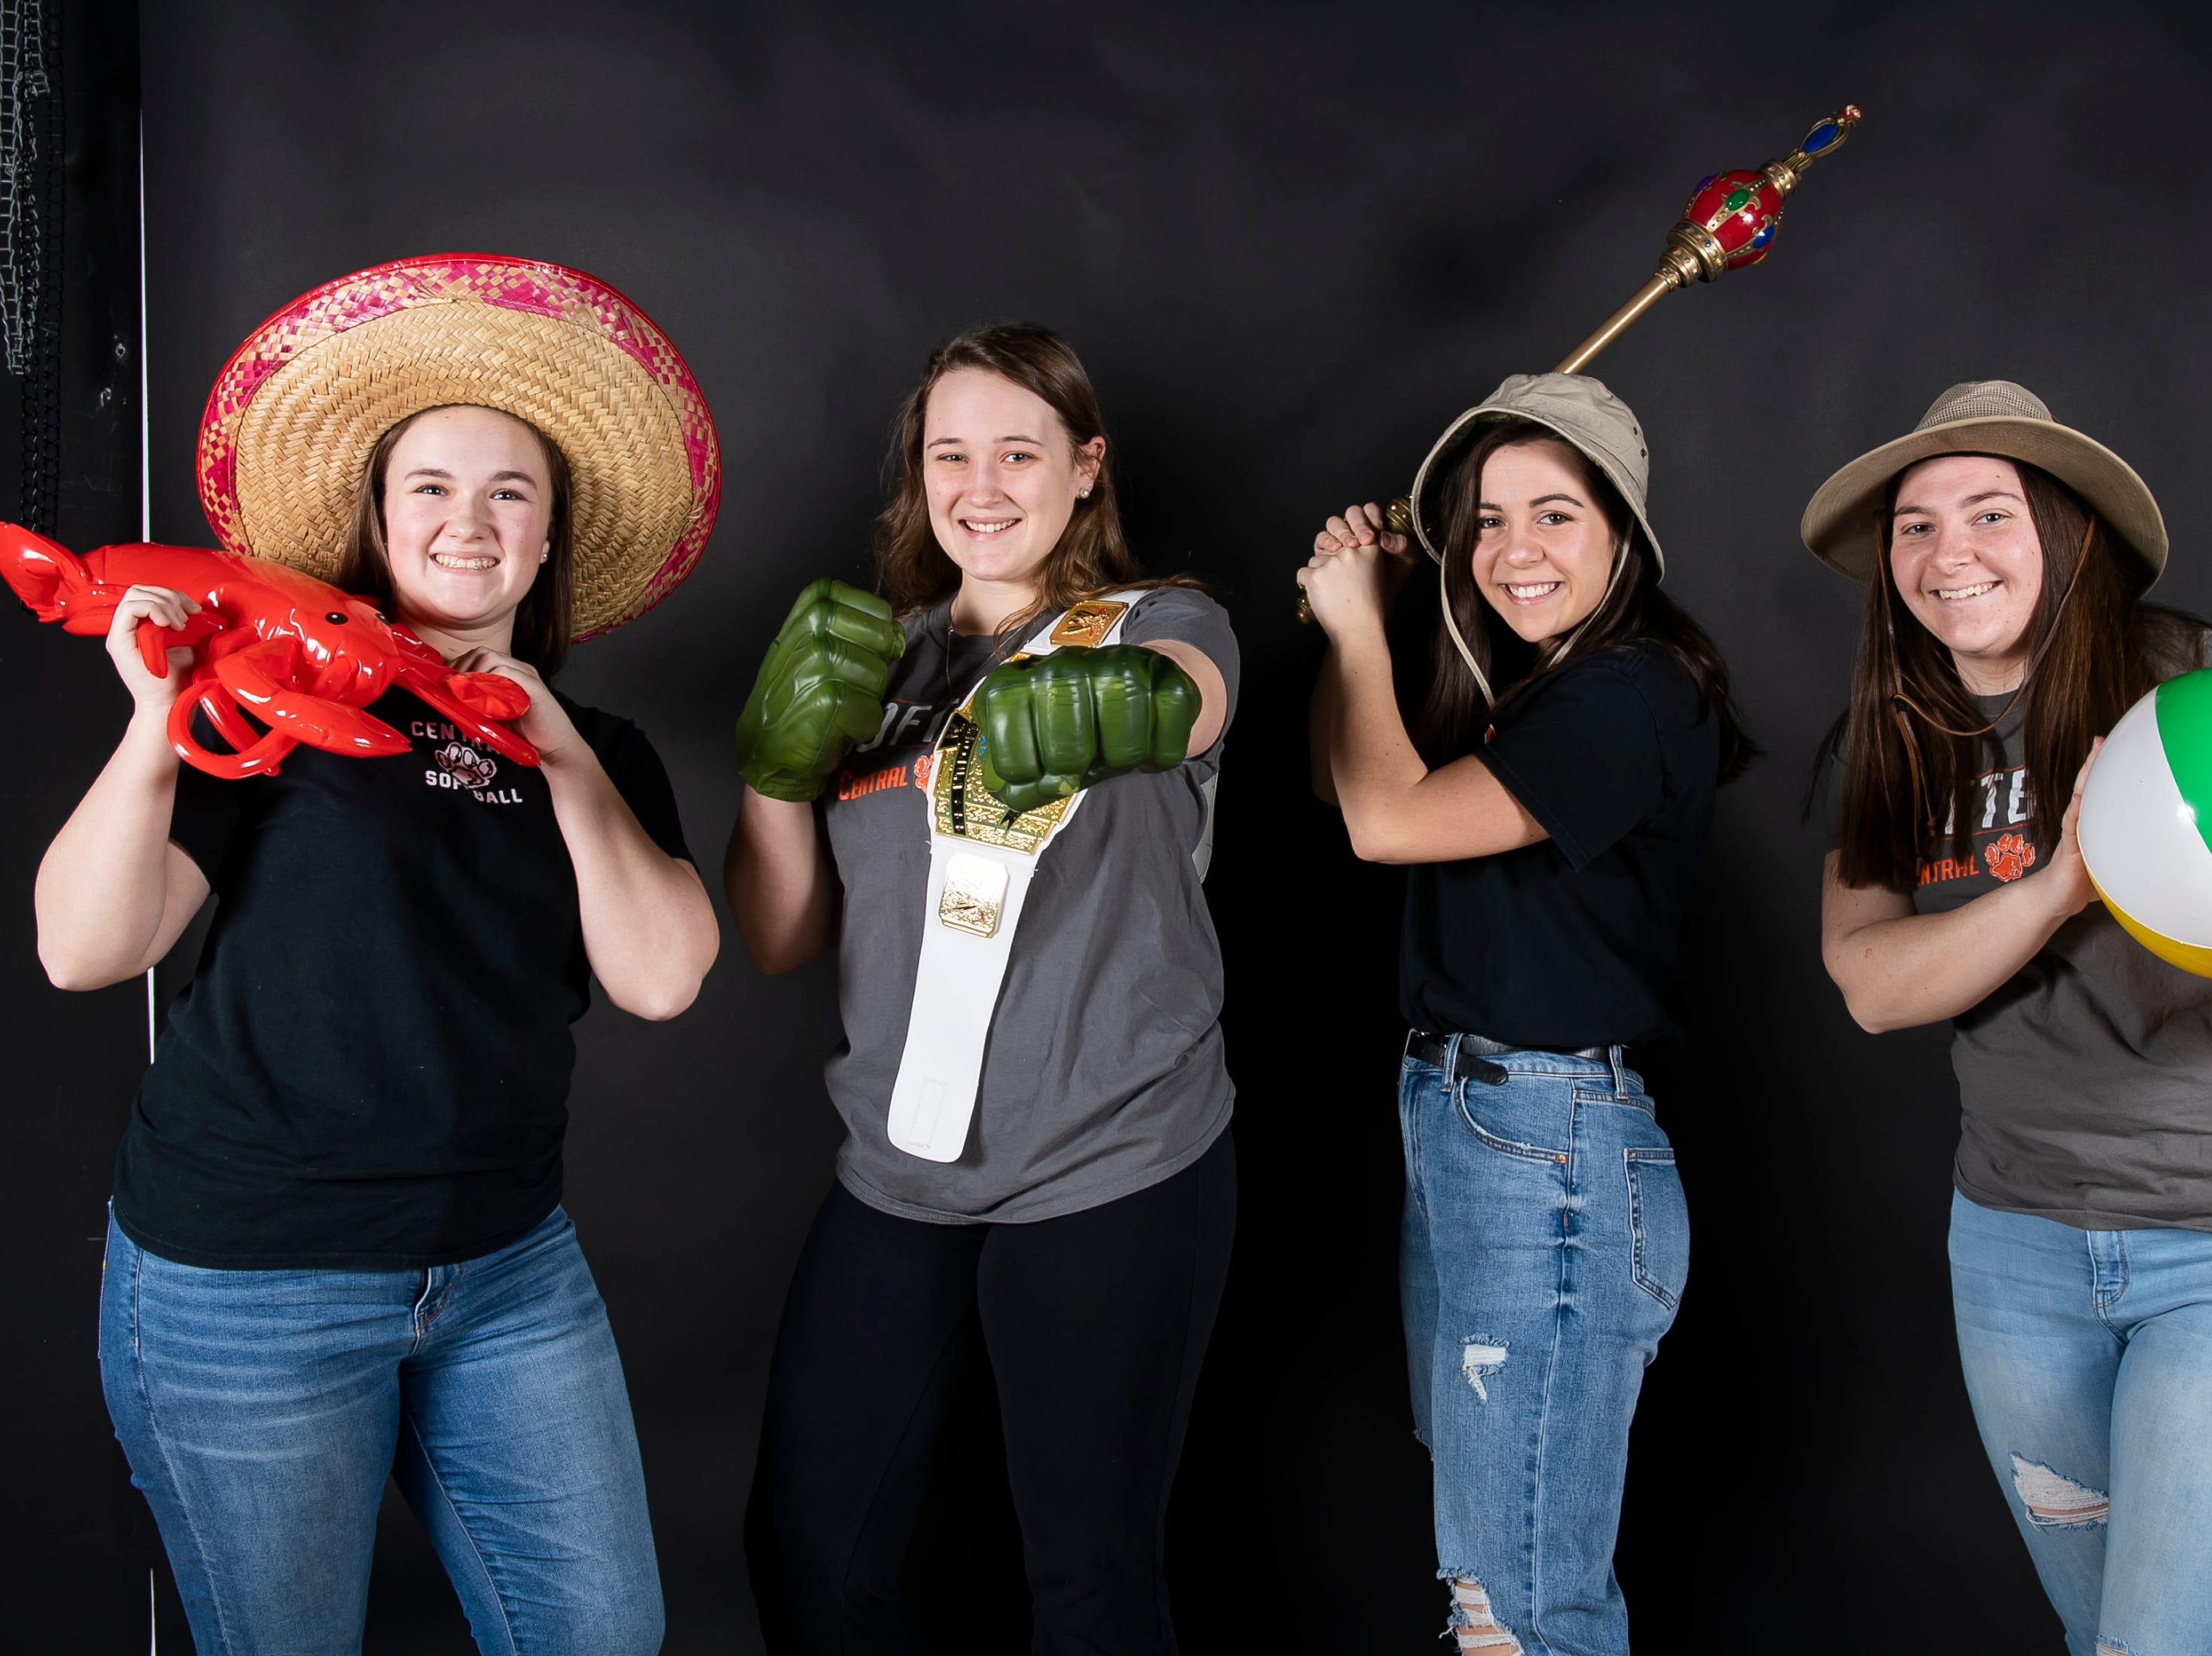 (From left) Central York softball's Sarah White, Natalie Craig, Grace Smith and Brianna Smith strike a pose in the GameTimePA photo booth during spring sports media day in York Sunday, March 10, 2019.